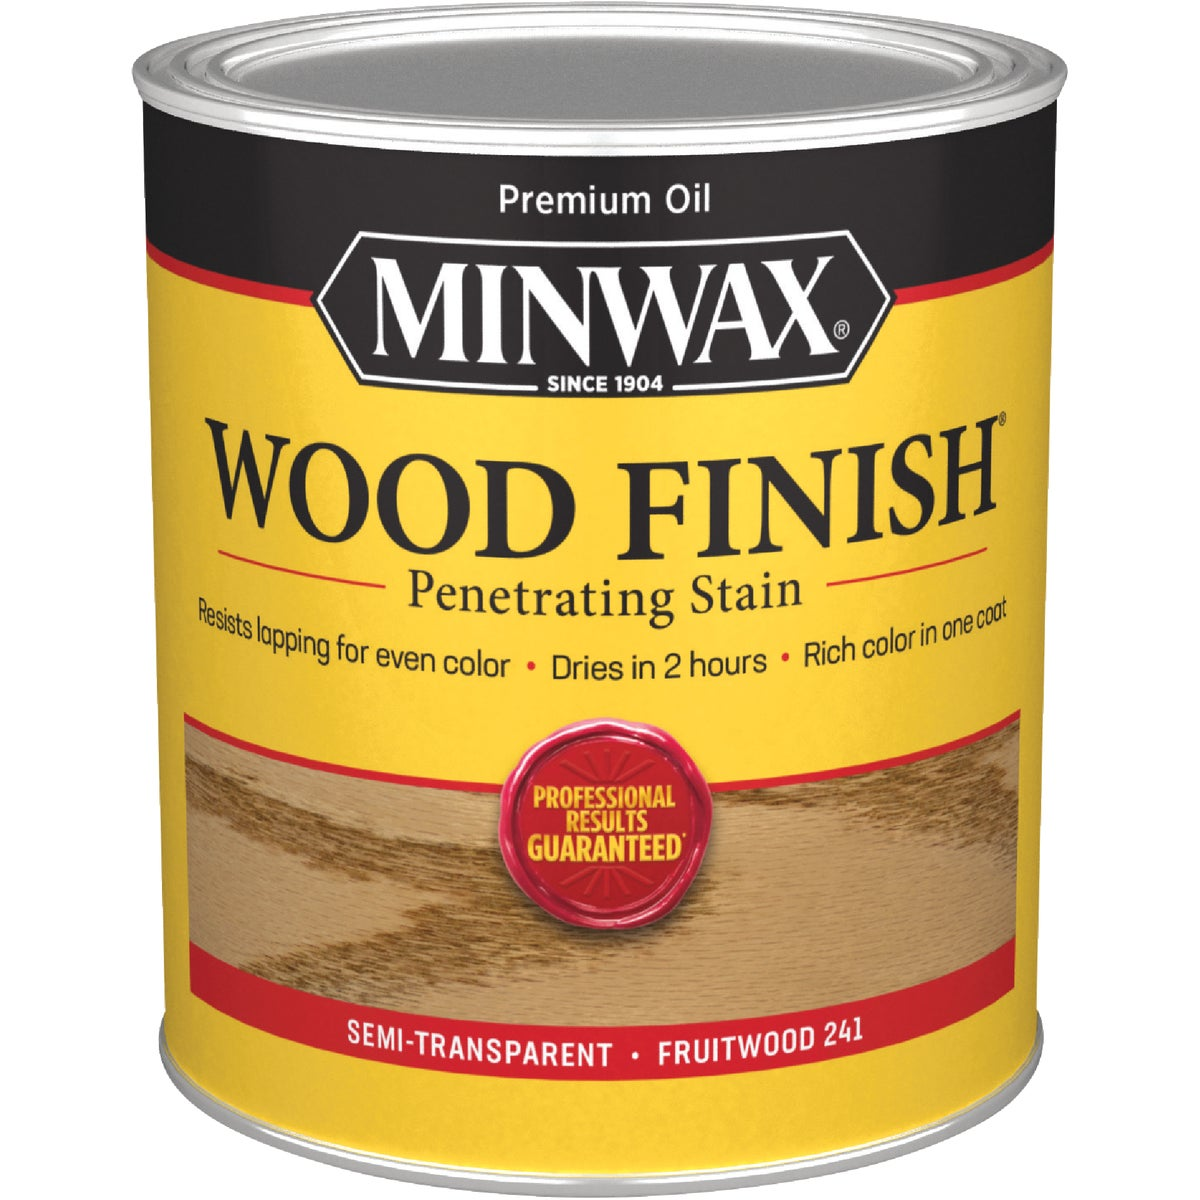 FRUITWOOD WOOD STAIN - 70010 by Minwax Company